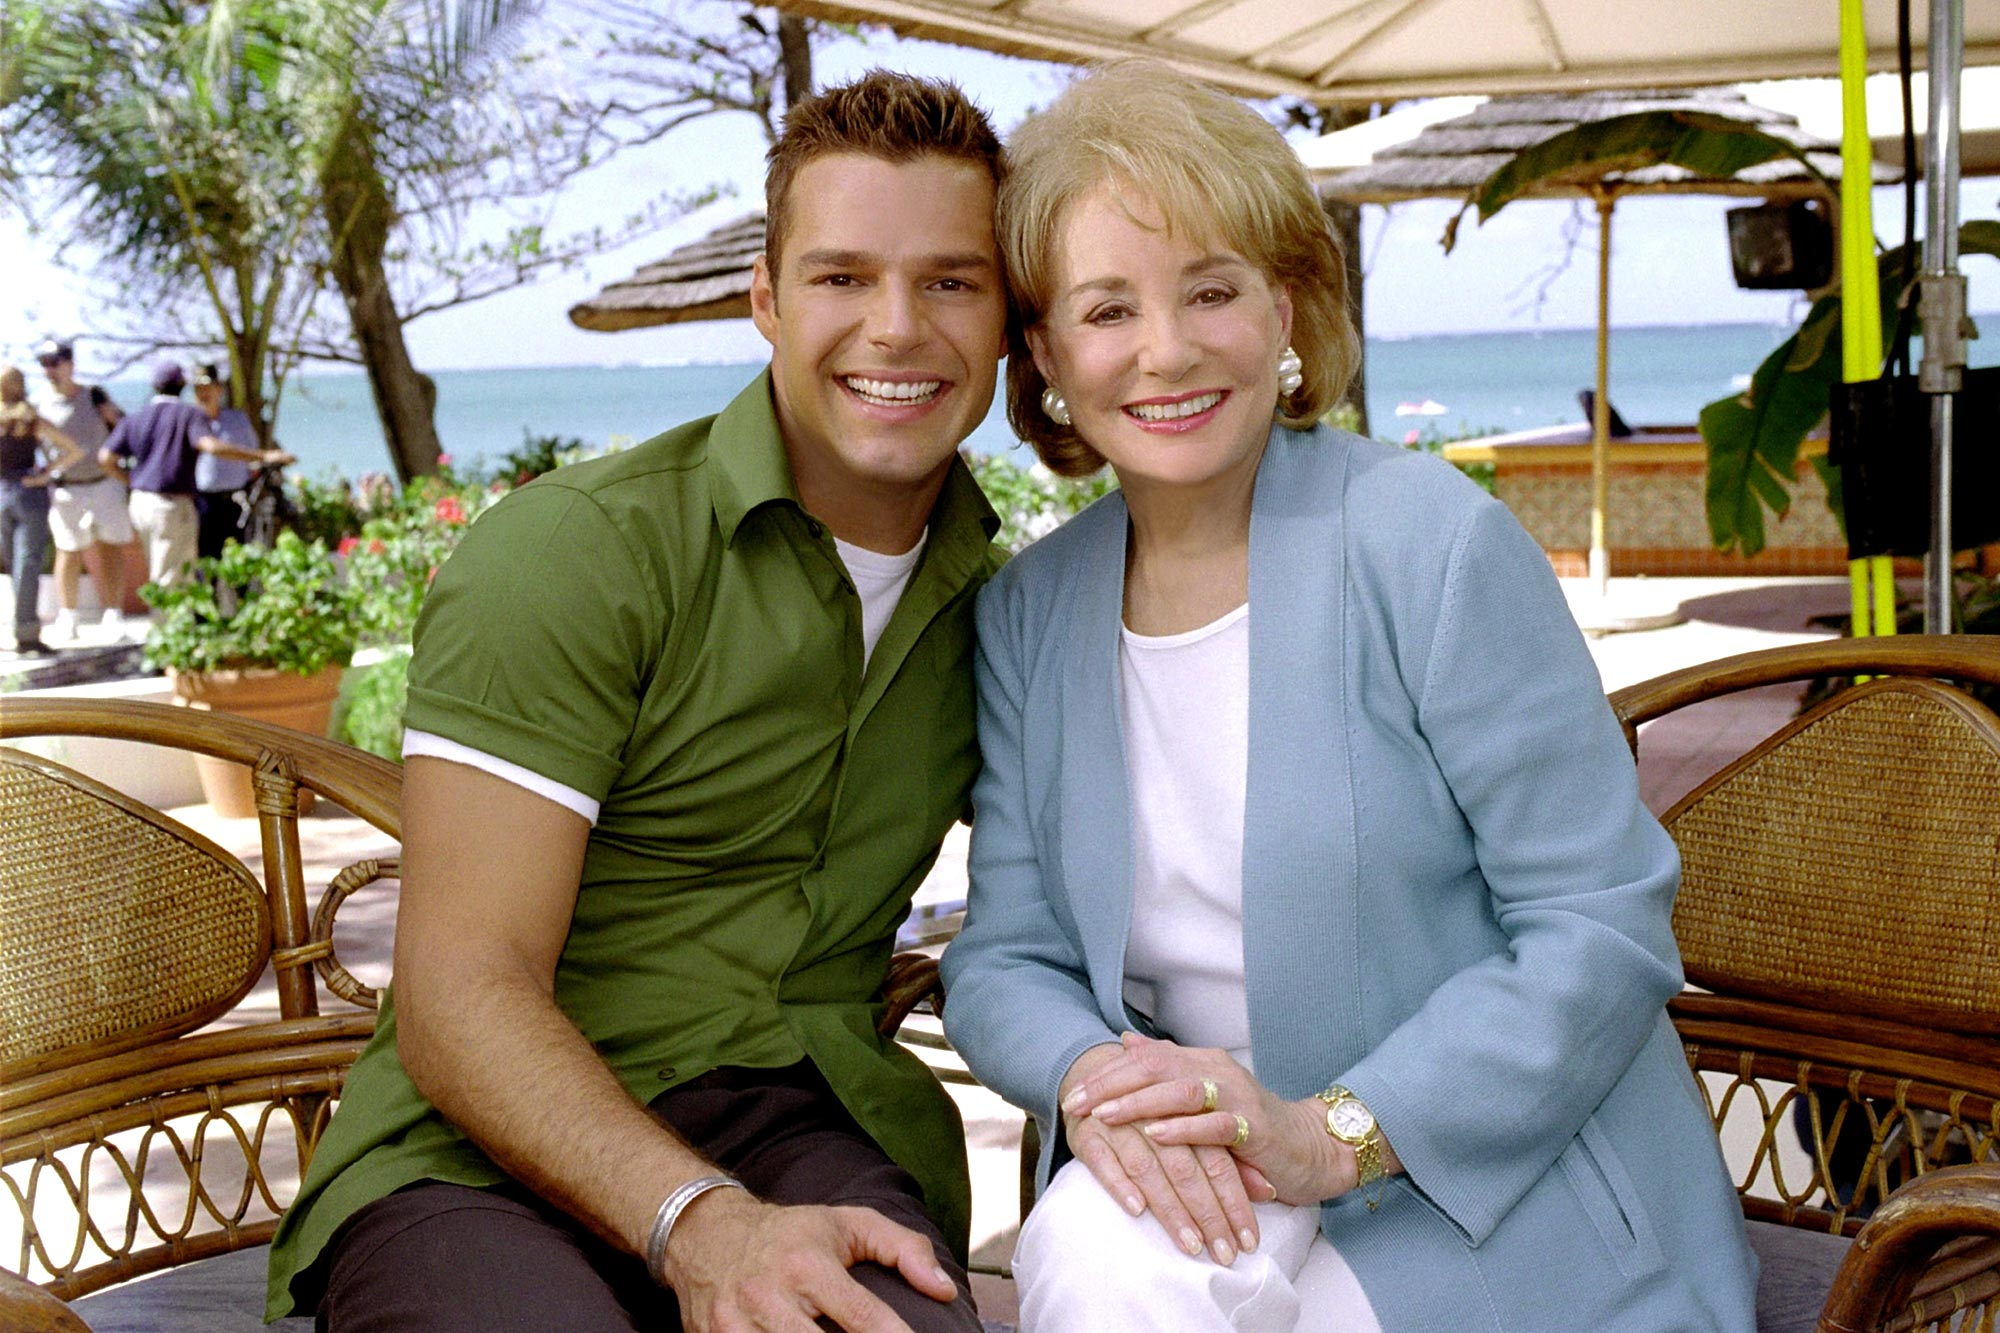 RICKY MARTIN, appearing on THE BARBARA WALTERS SPECIAL